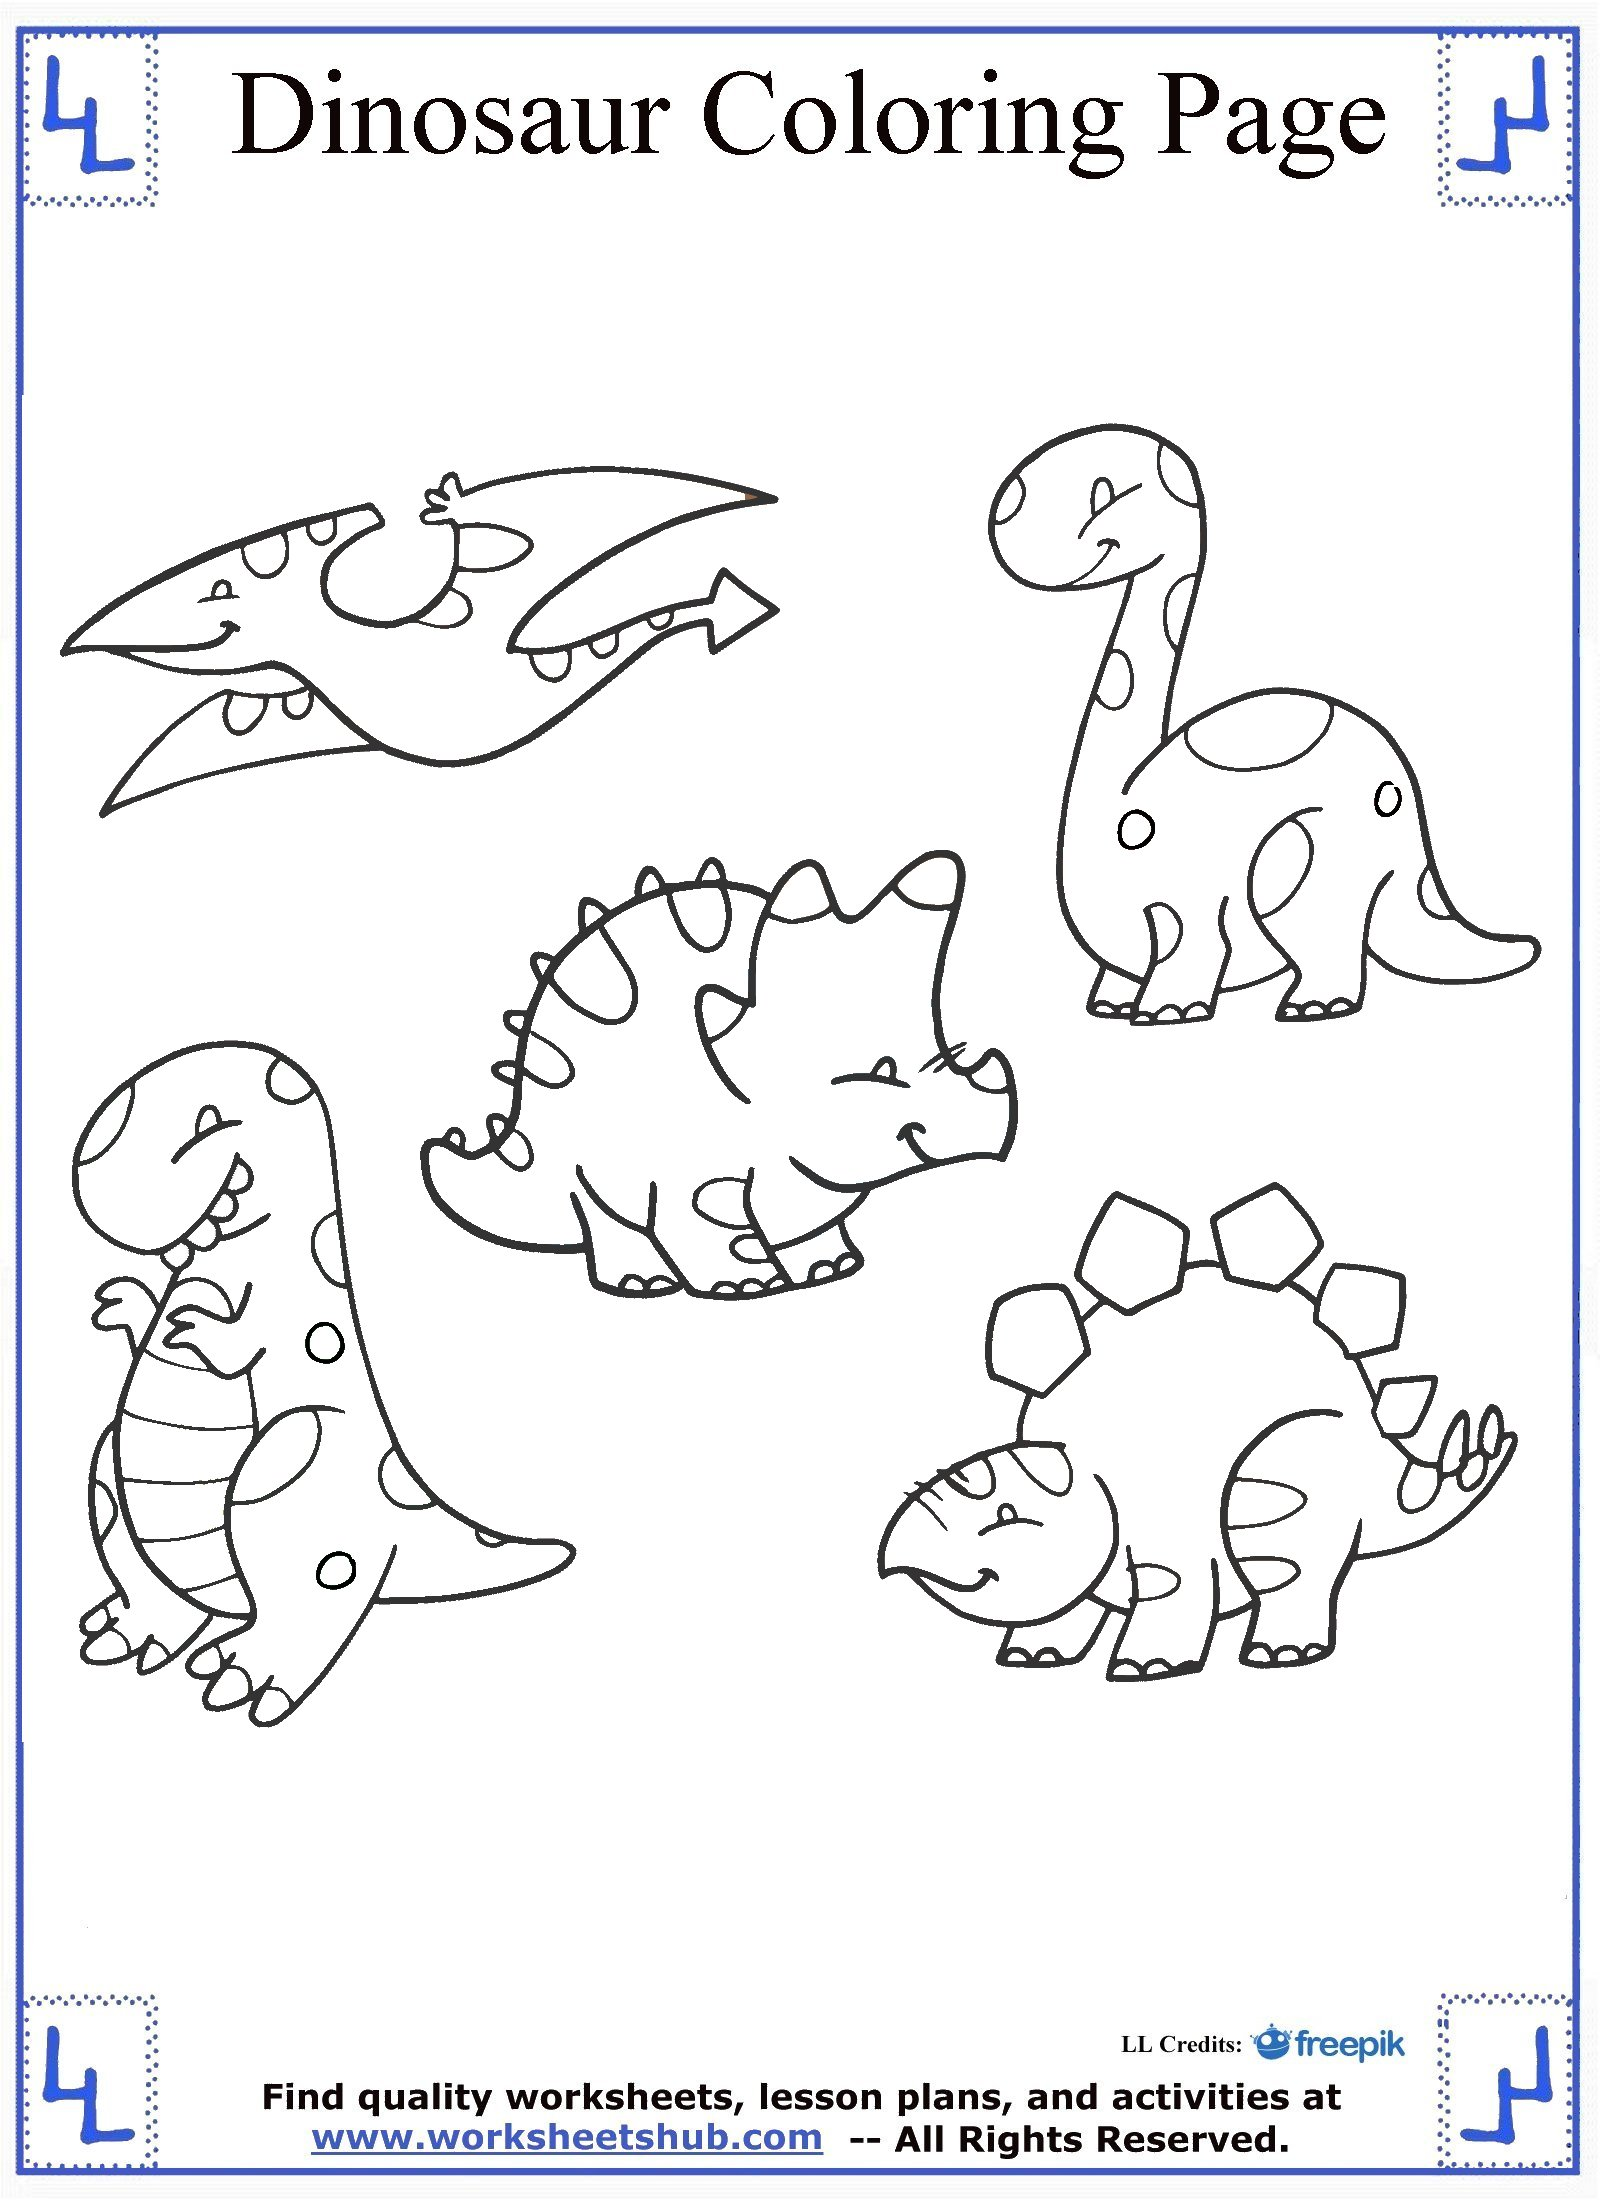 Cute and Cuddly Dinosaur Coloring Page